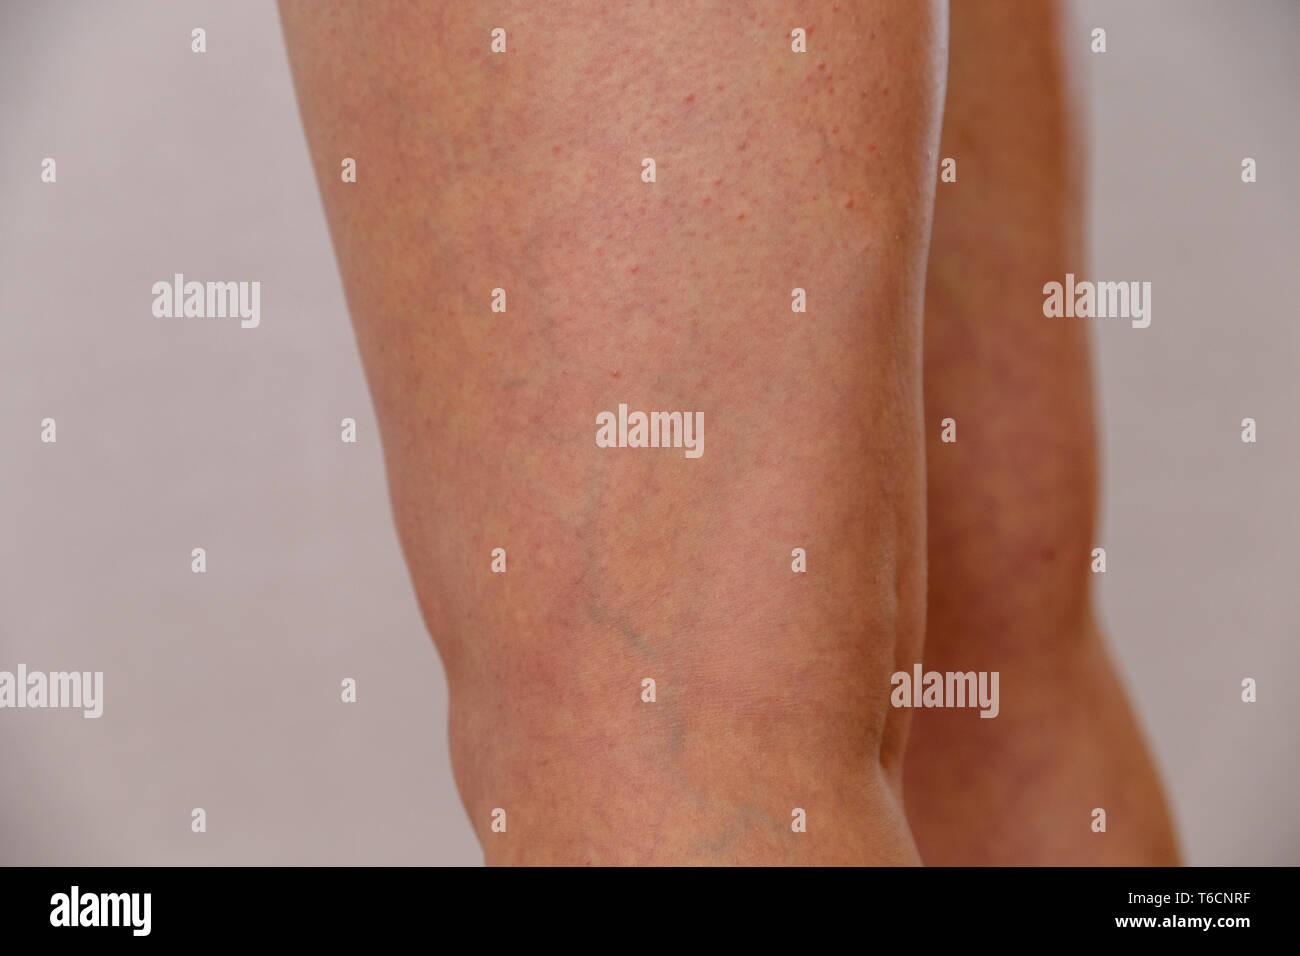 varicose veins of young woman - Stock Image